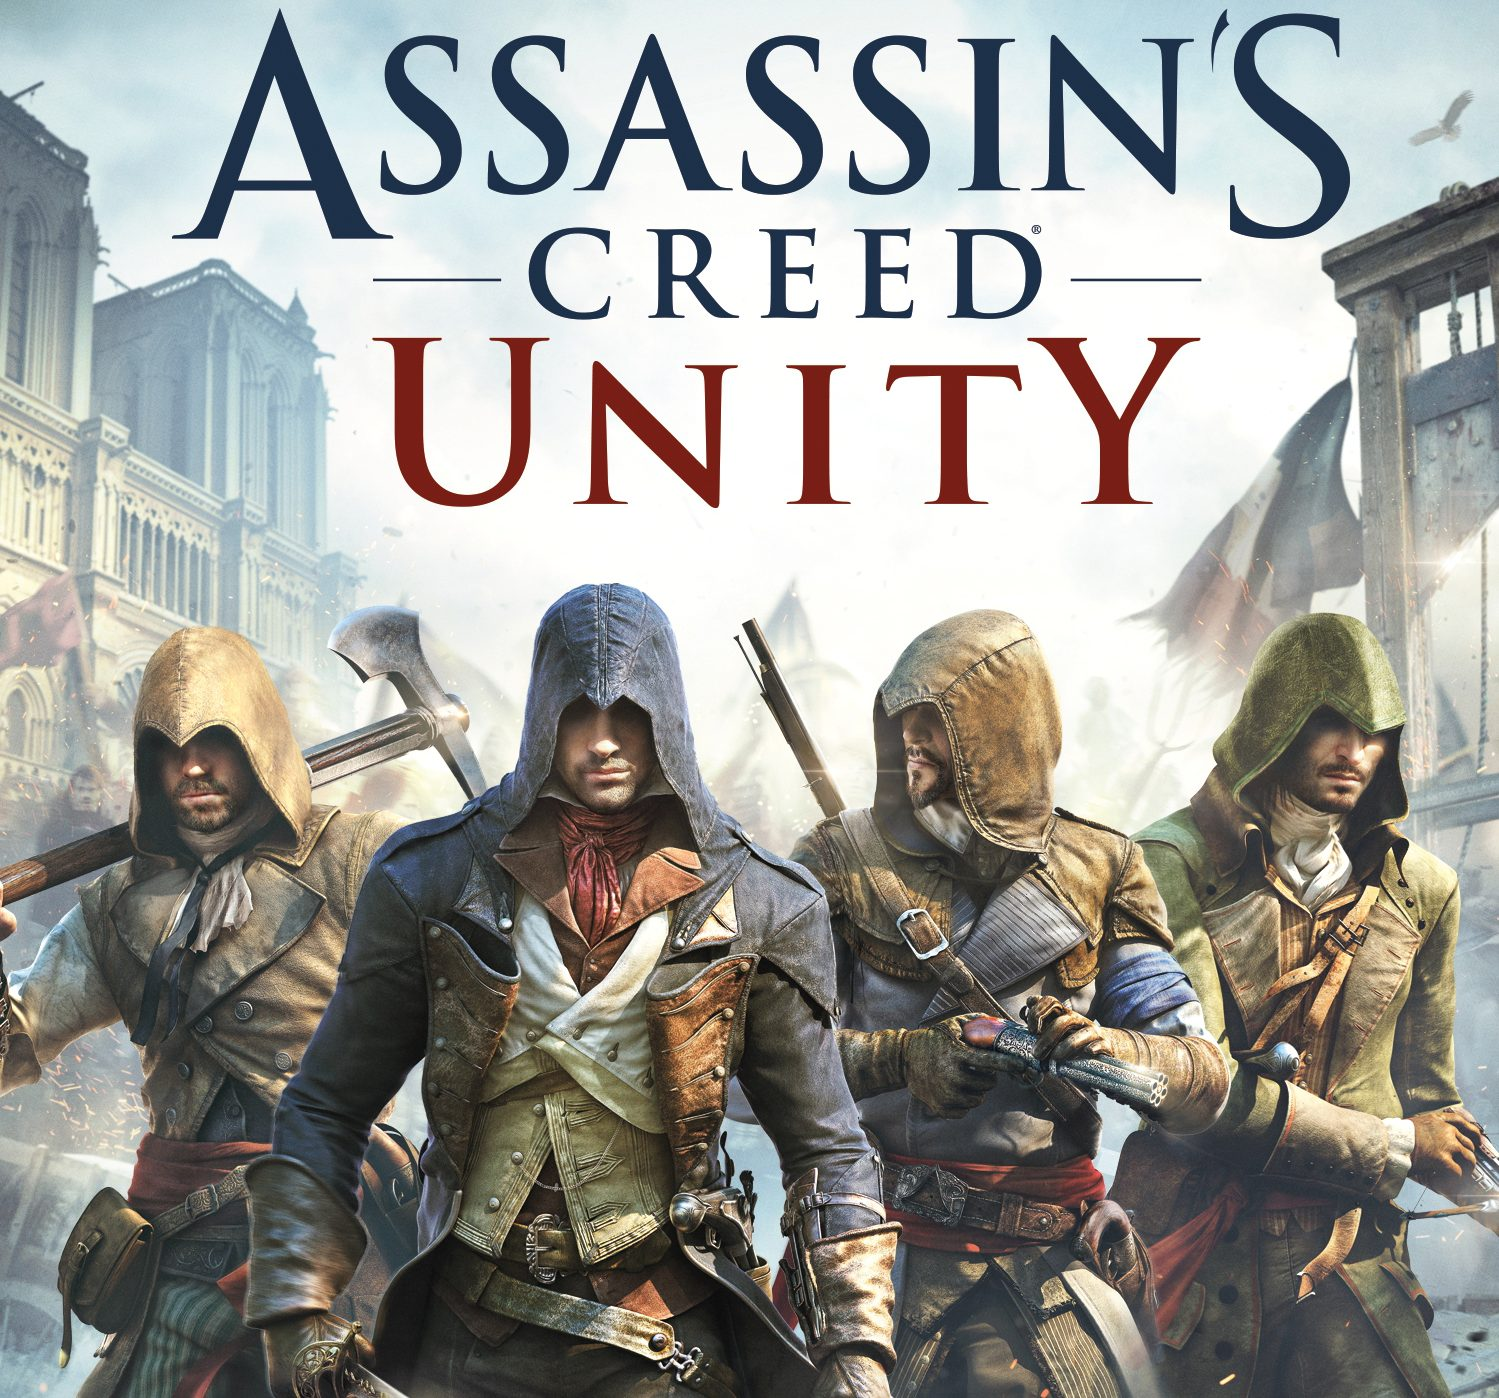 Assassins Creed Unity Cover e1617111638700 20 Fascinating Futuristic Facts About Back to the Future Part II